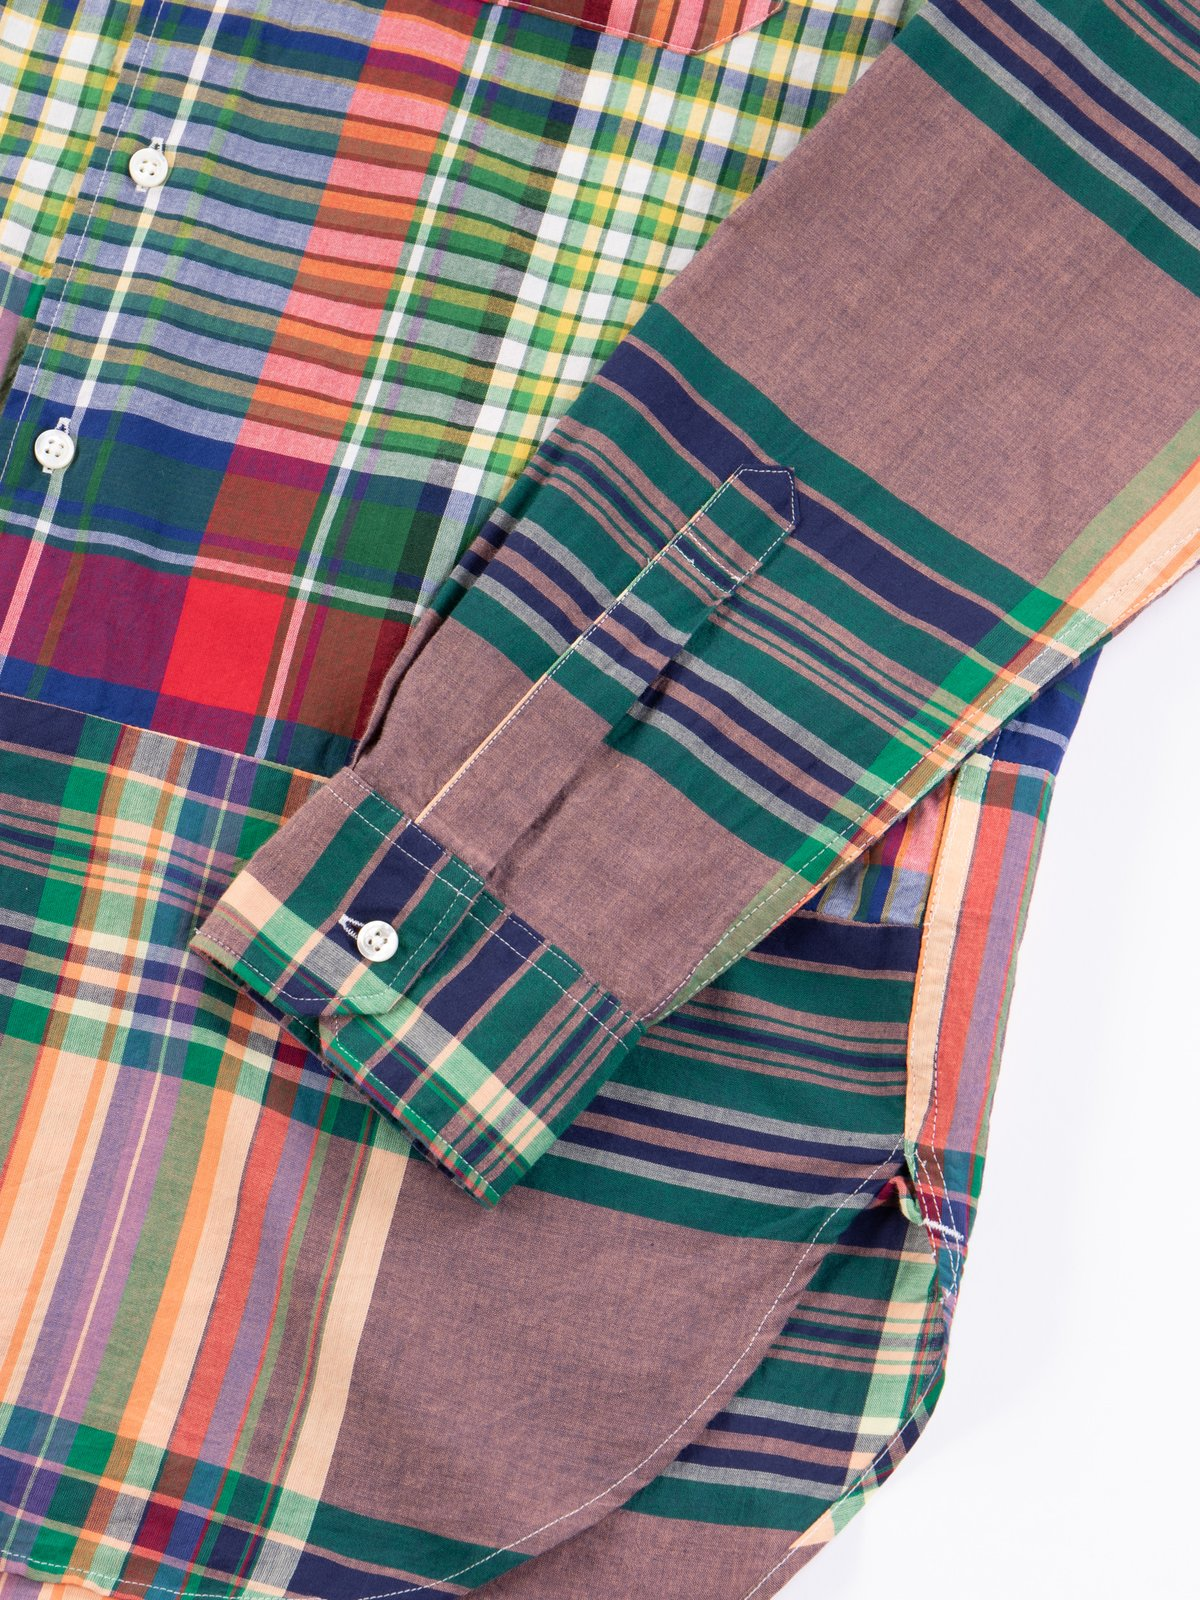 Red/Blue/Green Big Madras Plaid Spread Collar Shirt - Image 4